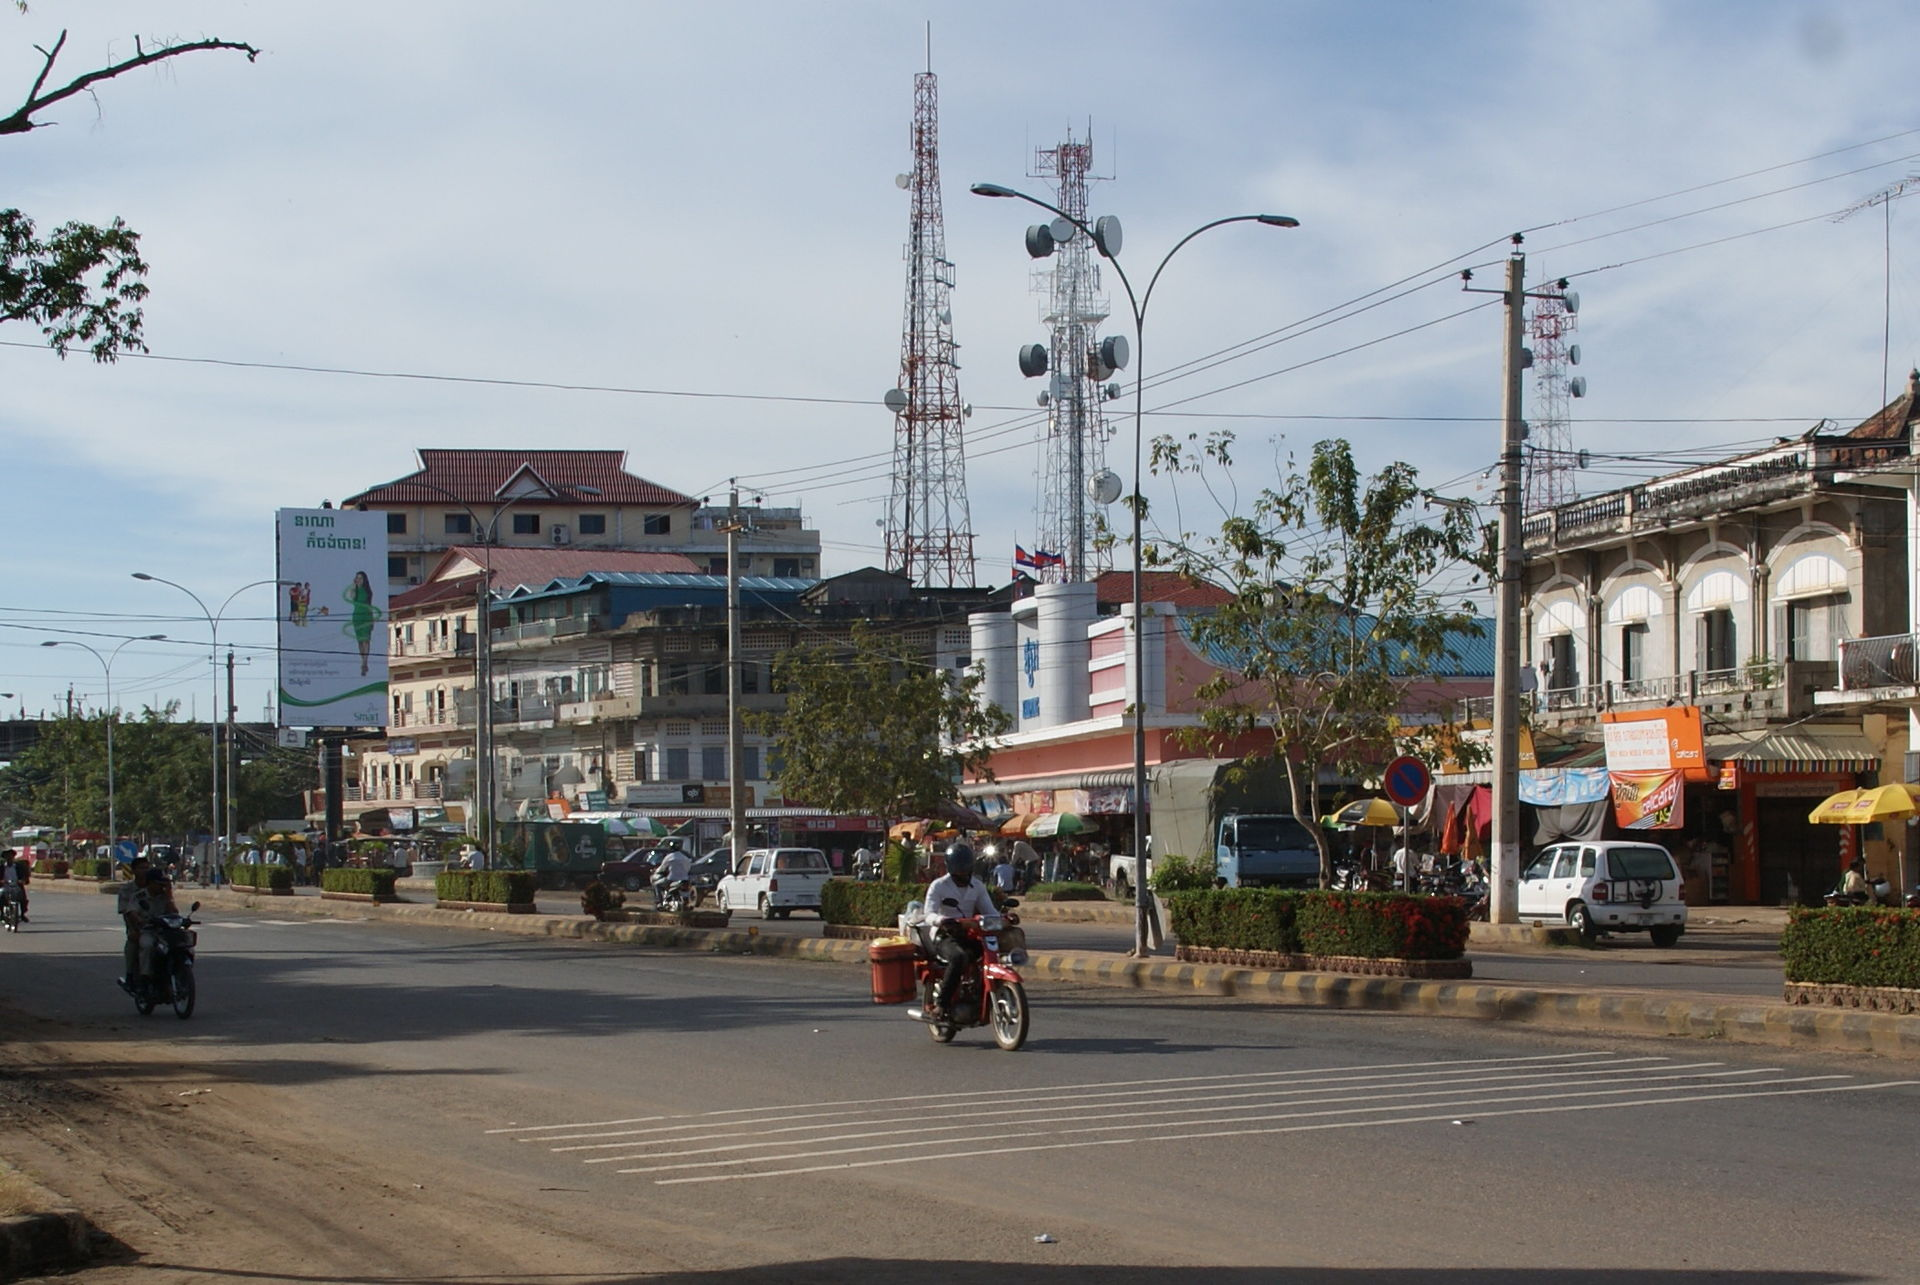 Sihanoukville (city)